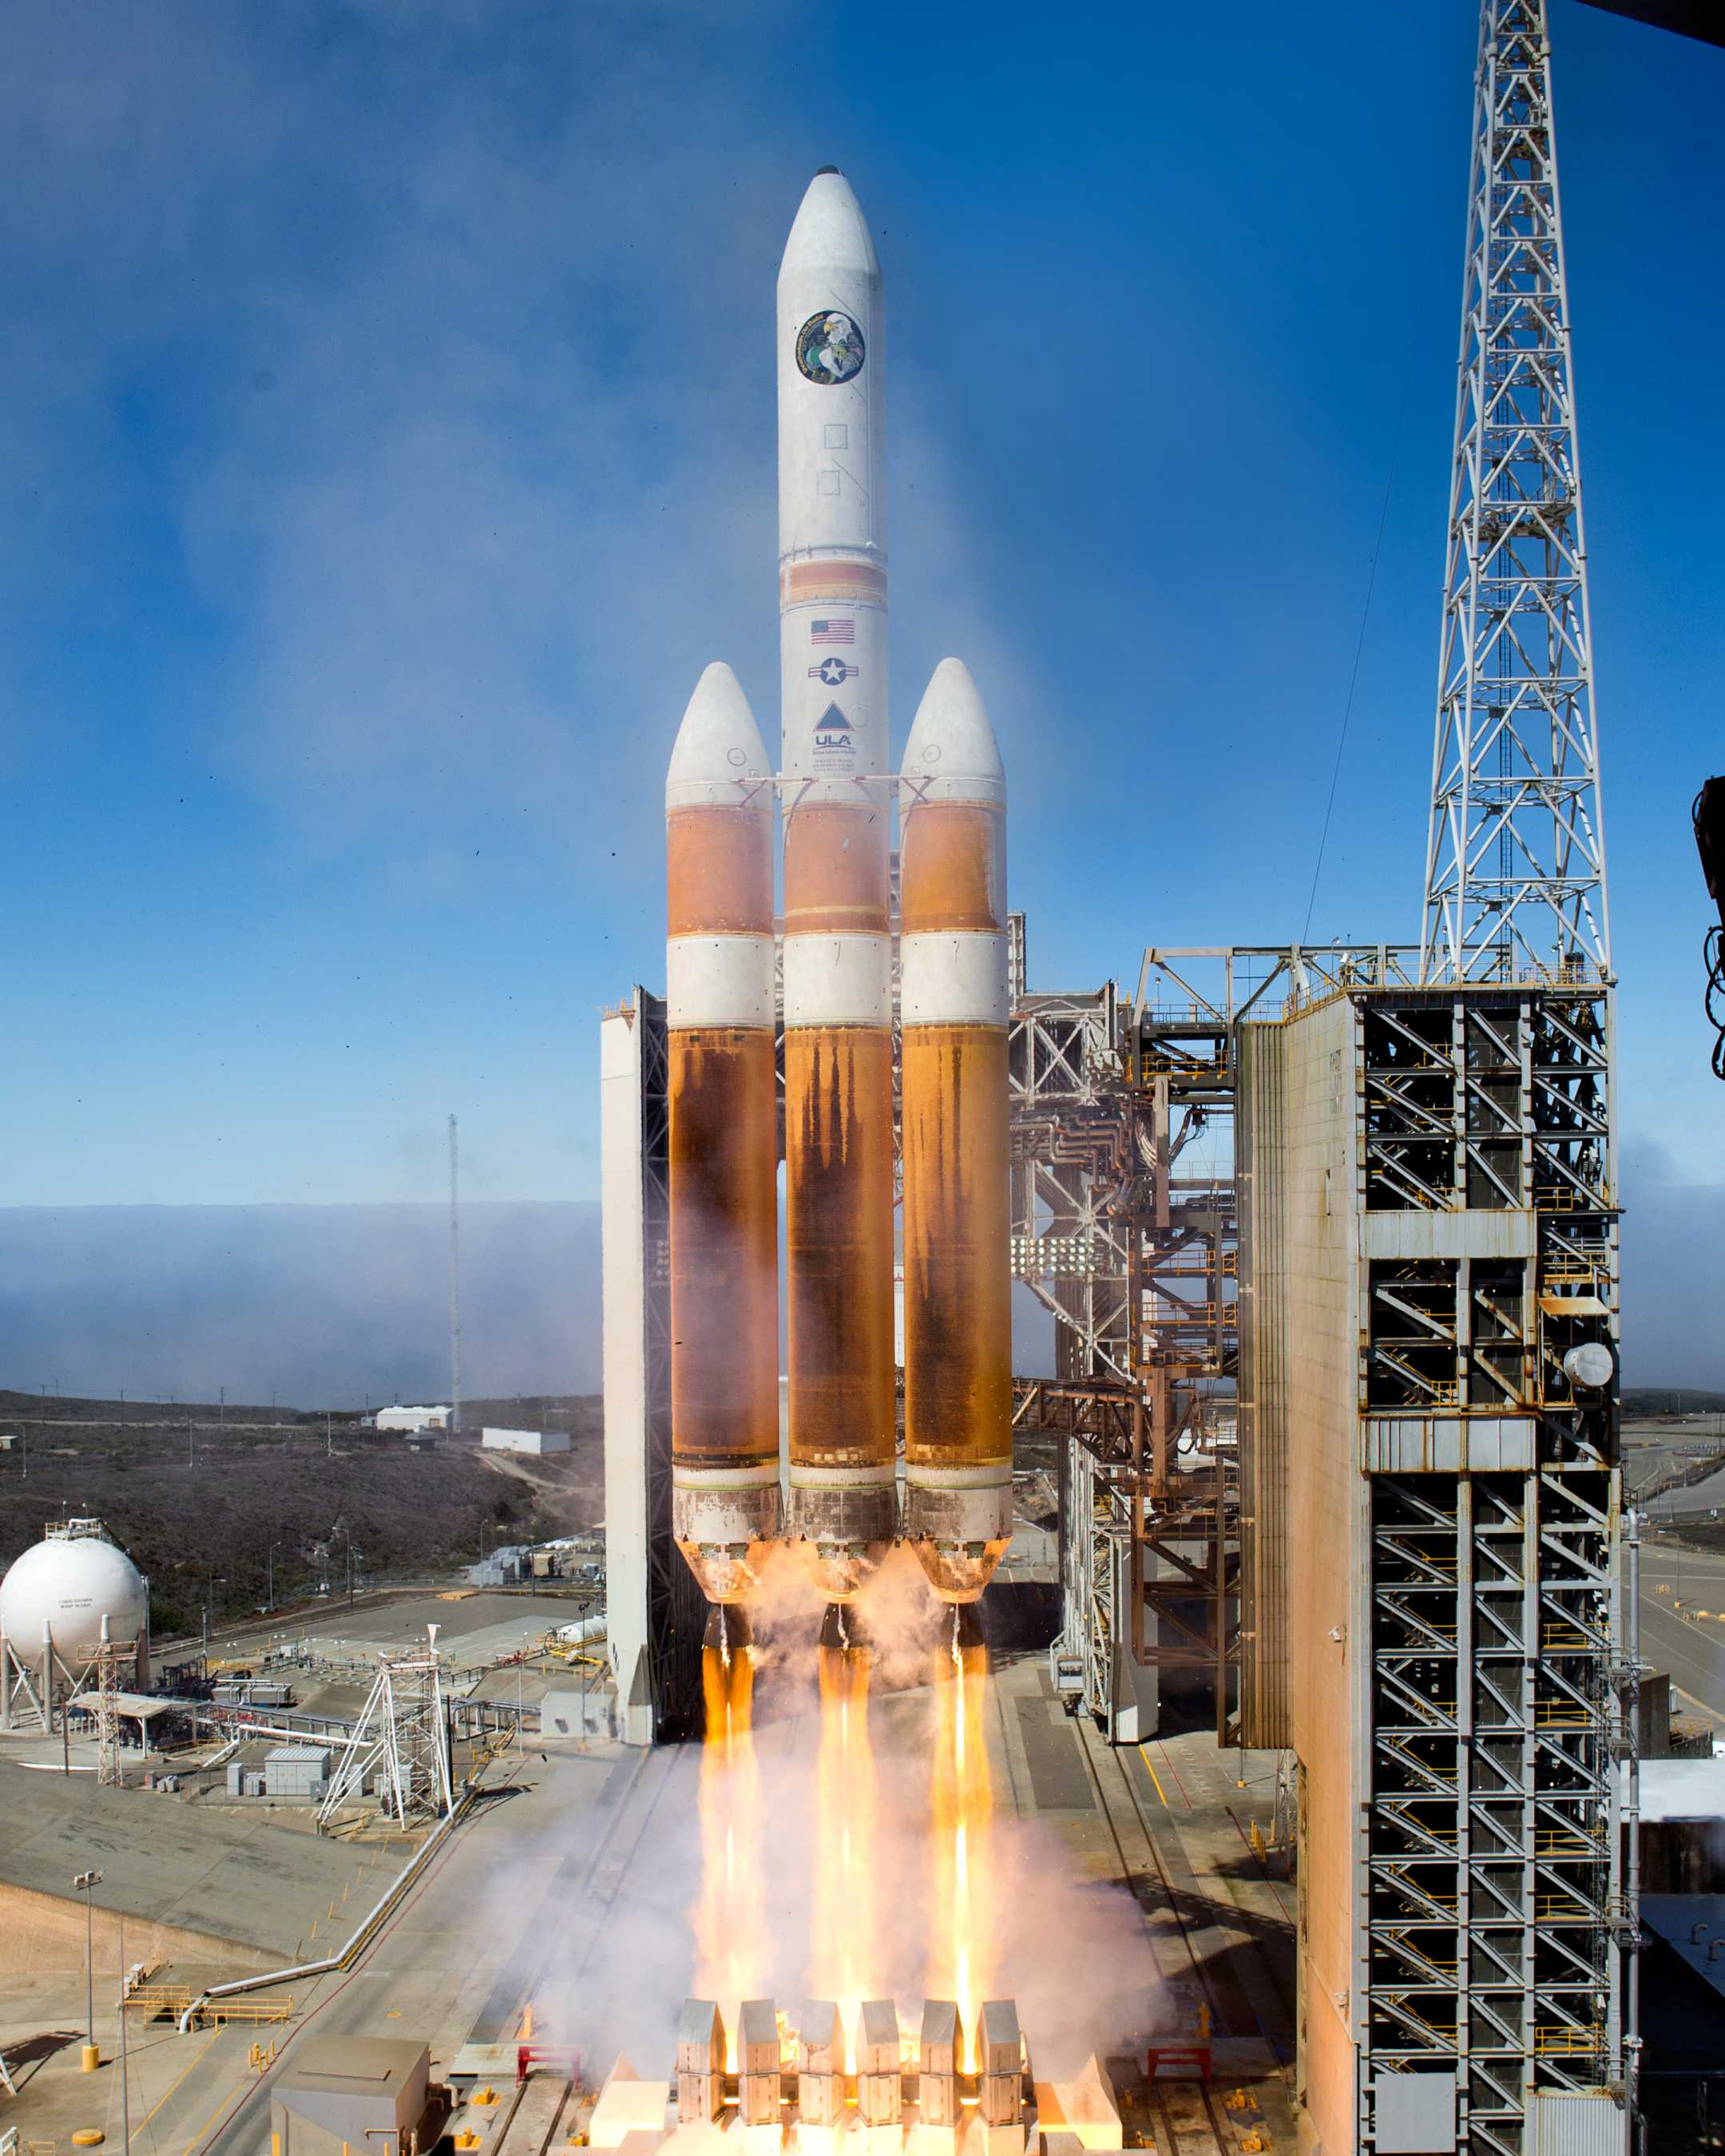 Launch of Delta IV NROL-65, August 28, 2013 from Vandenberg Air Force Base